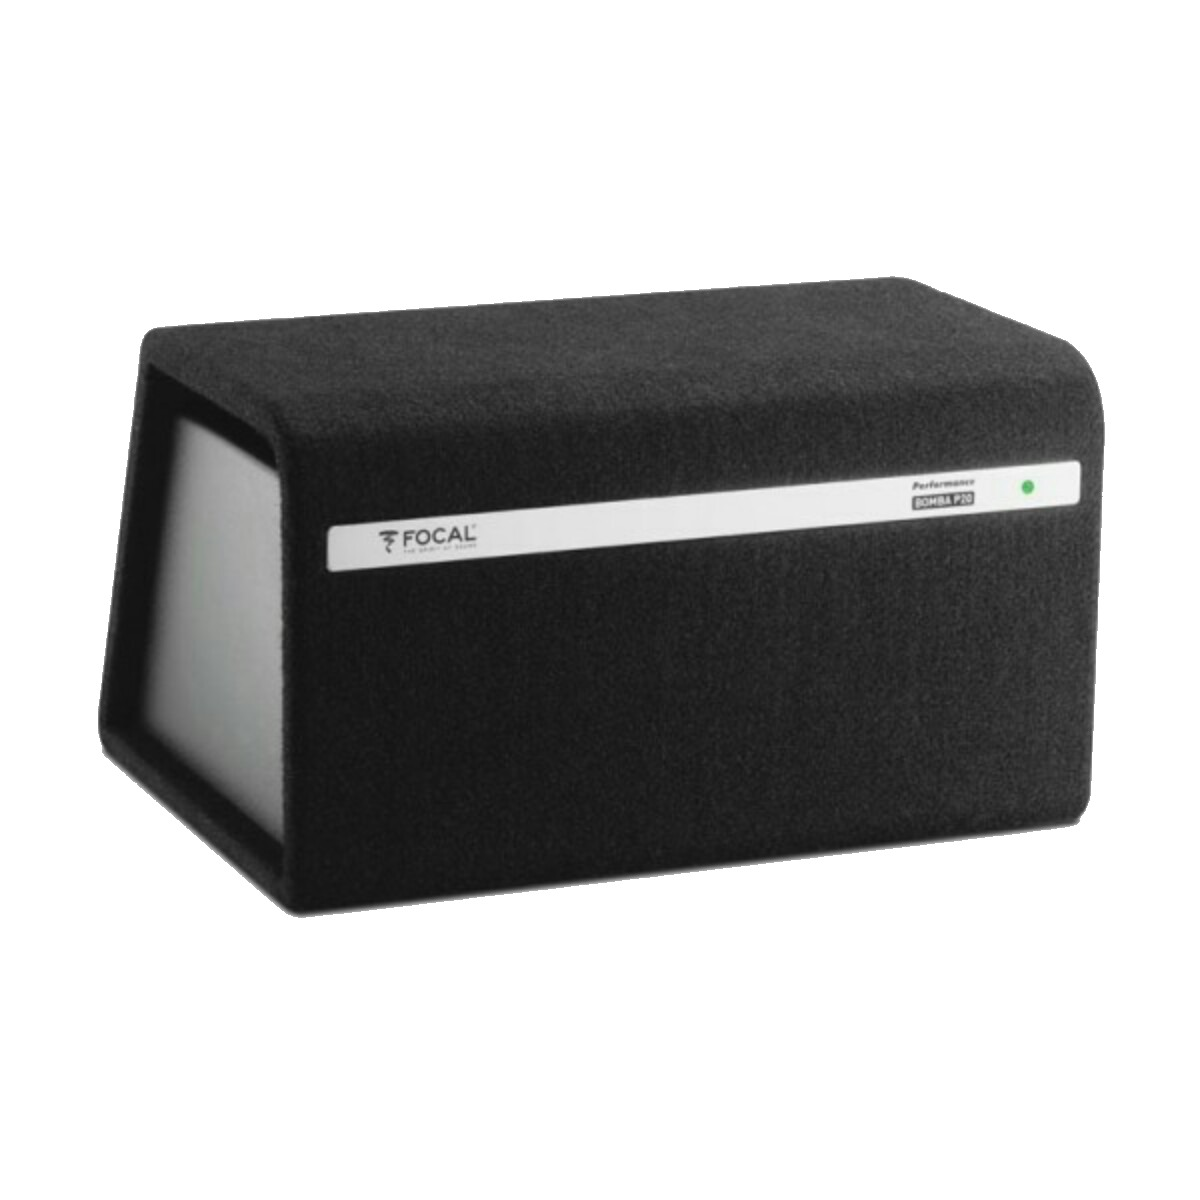 subwoofer amplificado focal 8 bomba bp20 300 watts rms 7 en mercado libre. Black Bedroom Furniture Sets. Home Design Ideas